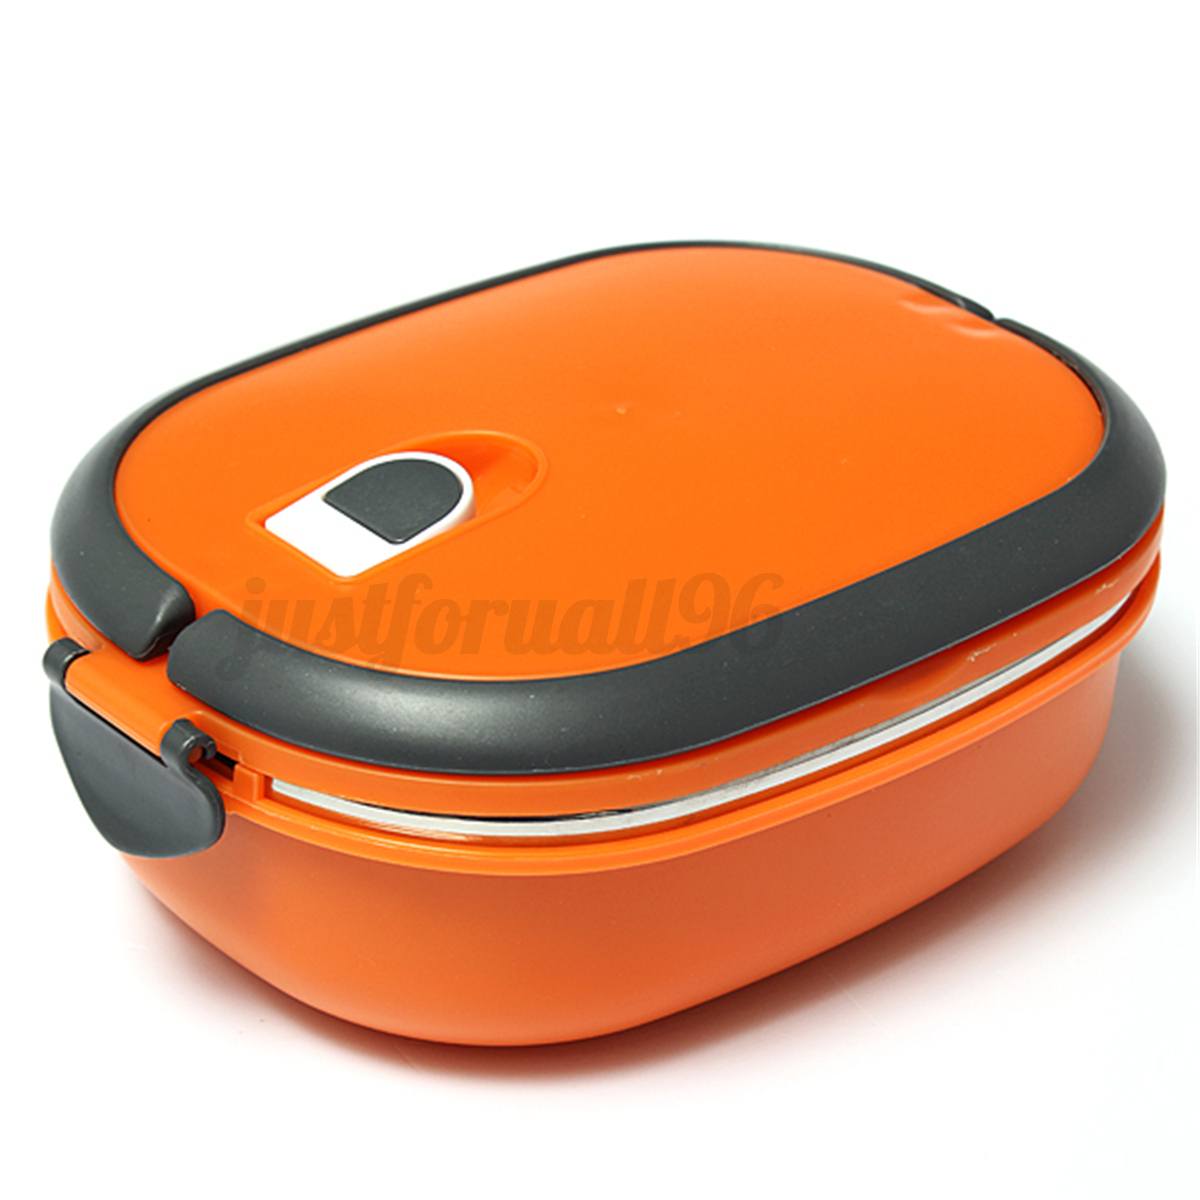 Stainless-Steel-Thermal-Insulated-Lunch-Box-Bento-Food-Picnic-Container thumbnail 13